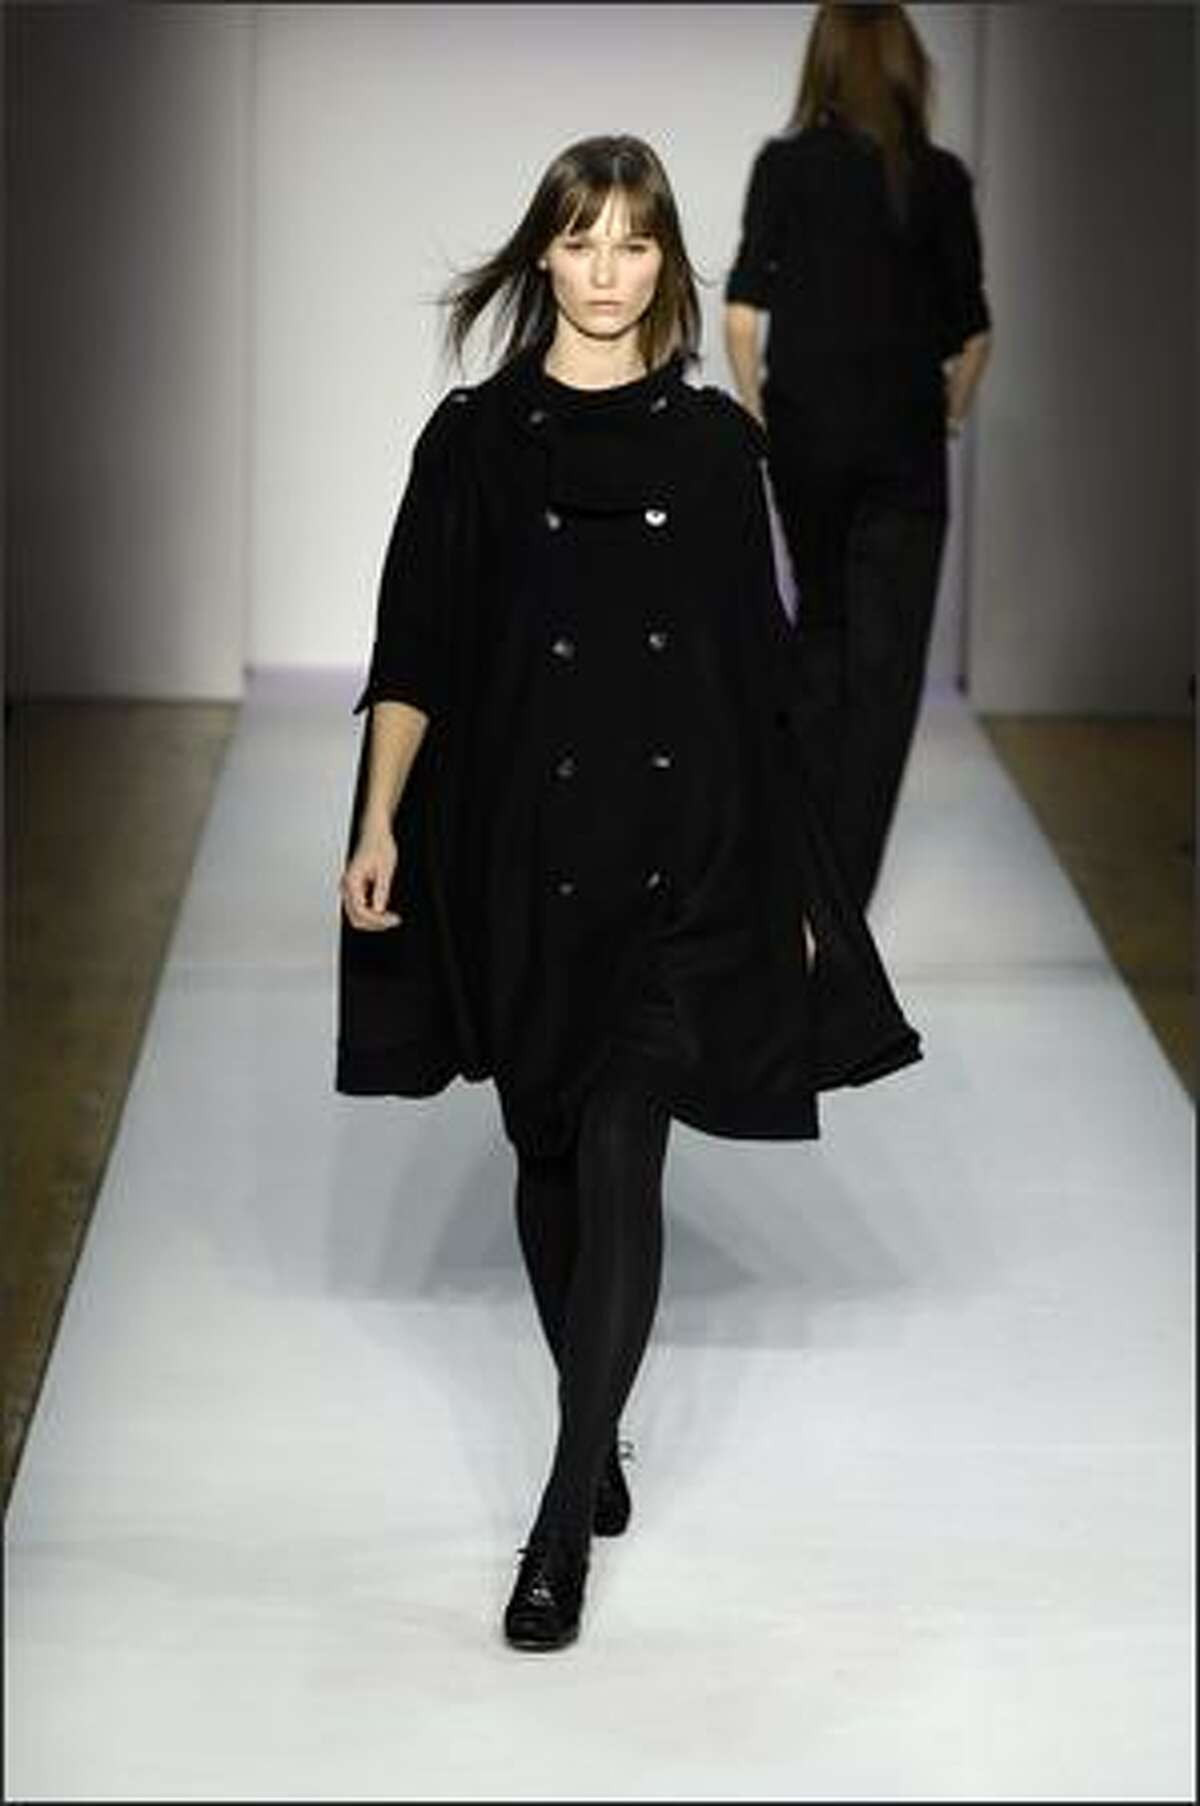 A model walks the runway at the Na-be By Victorya Hong fall 2008 fashion show during Mercedes-Benz Fashion Week at The Altman Building in New York. Ms. Hong was a contestant on the current version of the hit TV series